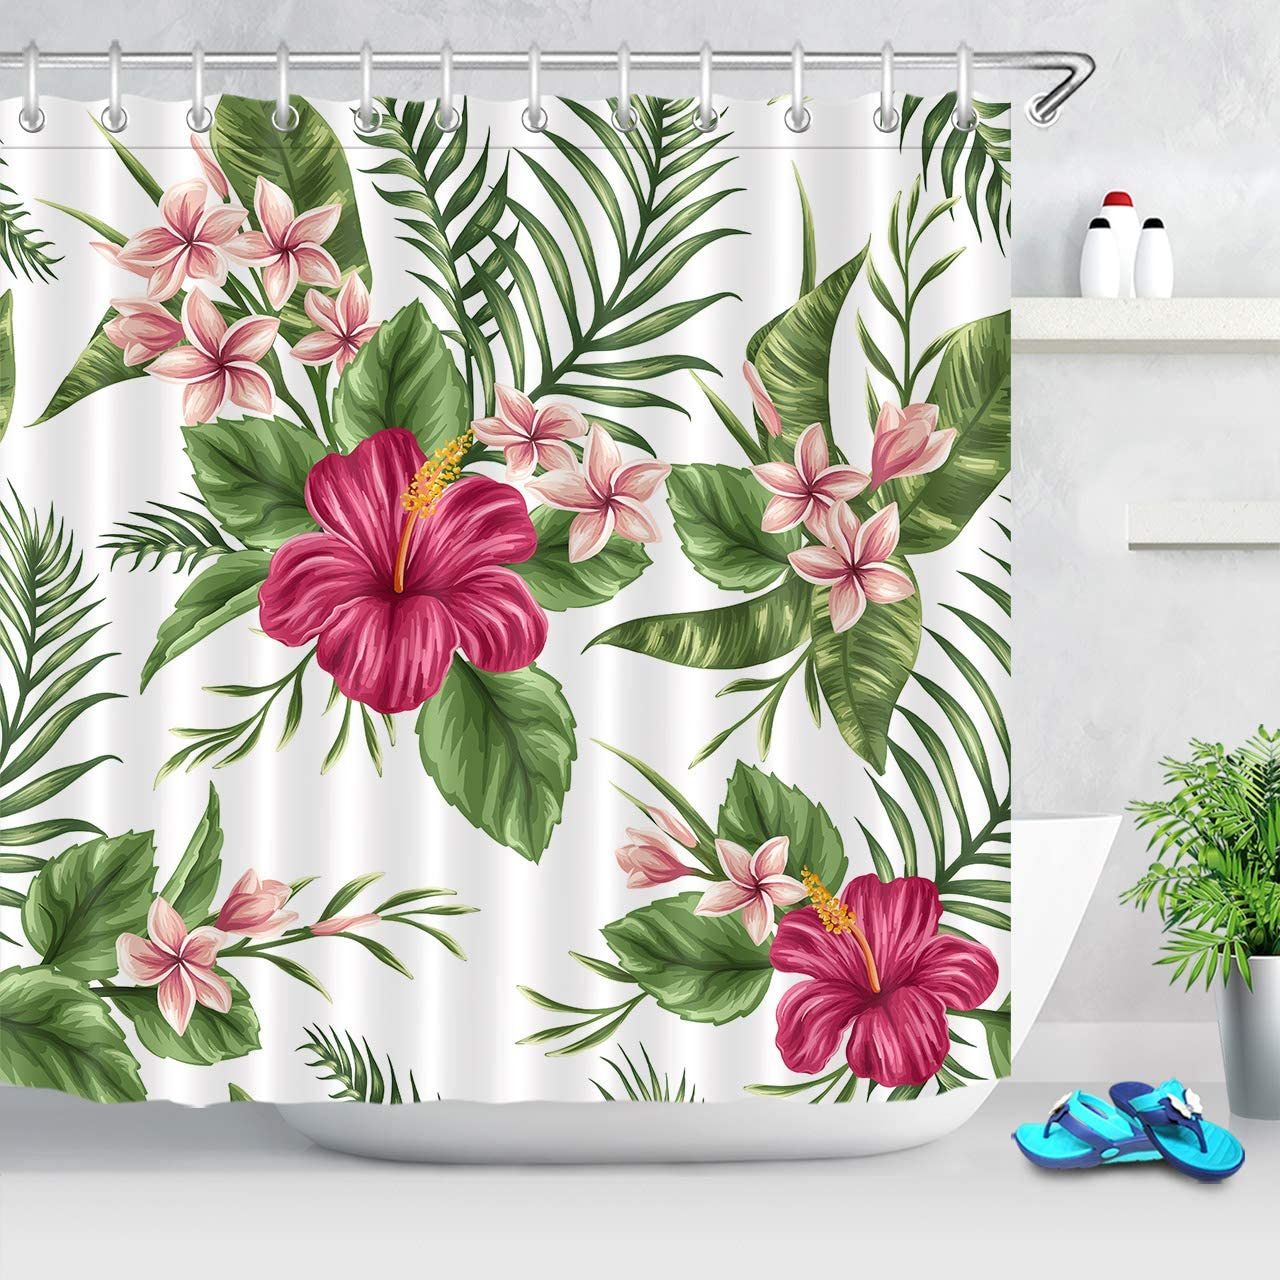 Amazon Com Lb Hawaiian Tropical Leaf Flowers Decor Shower Curtain For Bathroom Hibiscus Plumeria Floral Plant Theme Water Repellant Decorative Curtain 70 X 70 Inch Furniture Decor Green tropical plants shower curtain bathroom waterproof polyester shower curtain leaves printing curtains for bathroom shower. lb hawaiian tropical leaf flowers decor shower curtain for bathroom hibiscus plumeria floral plant theme water repellant decorative curtain 70 x 70